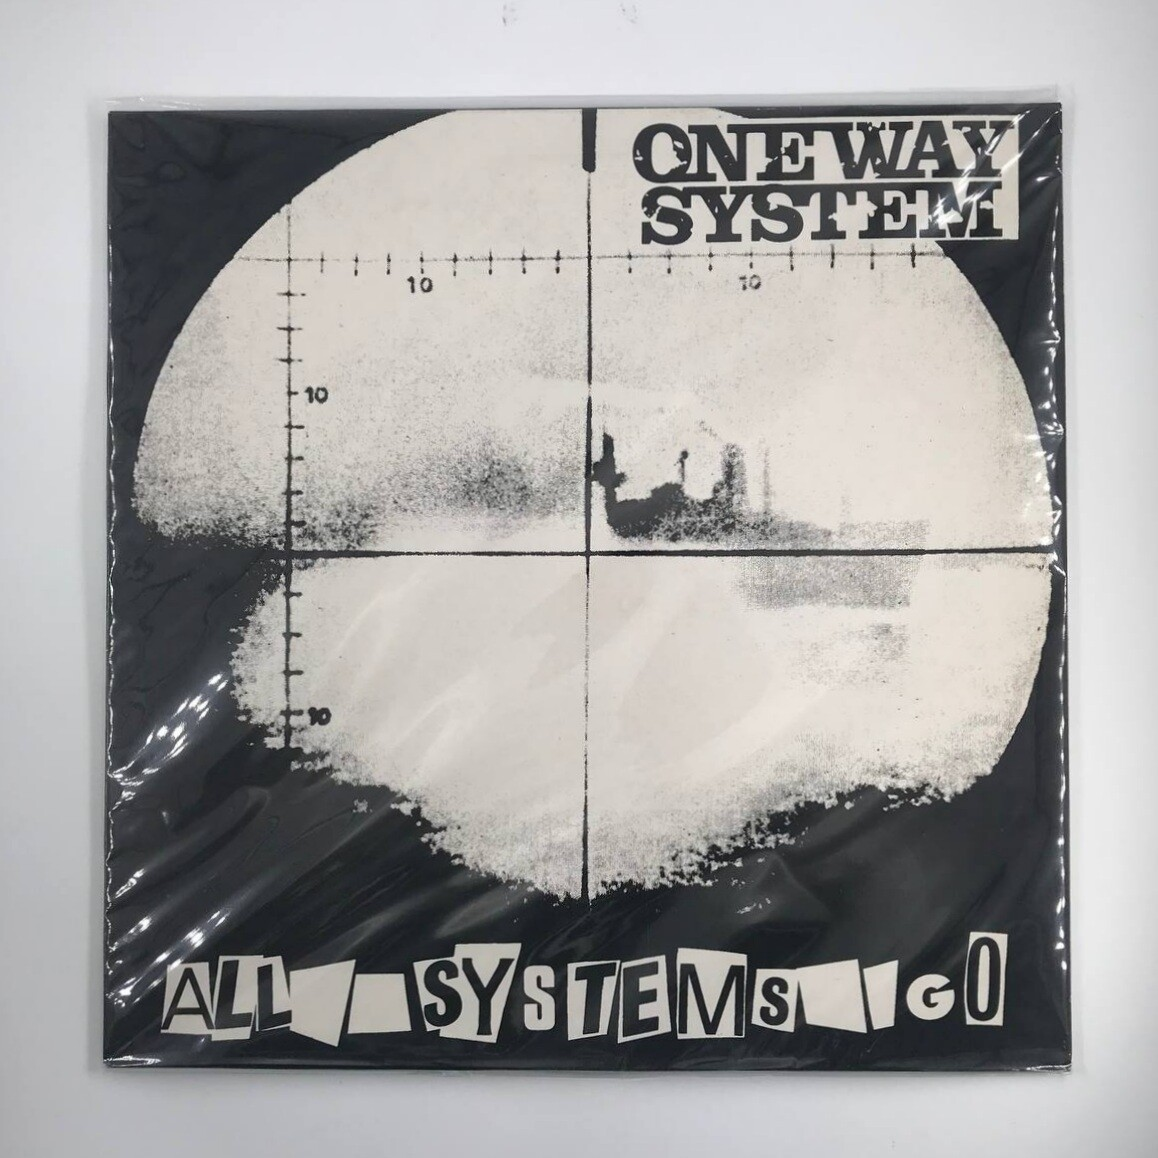 [USED] ONE WAY SYSTEM -ALL SYSTEMS GO!- LP